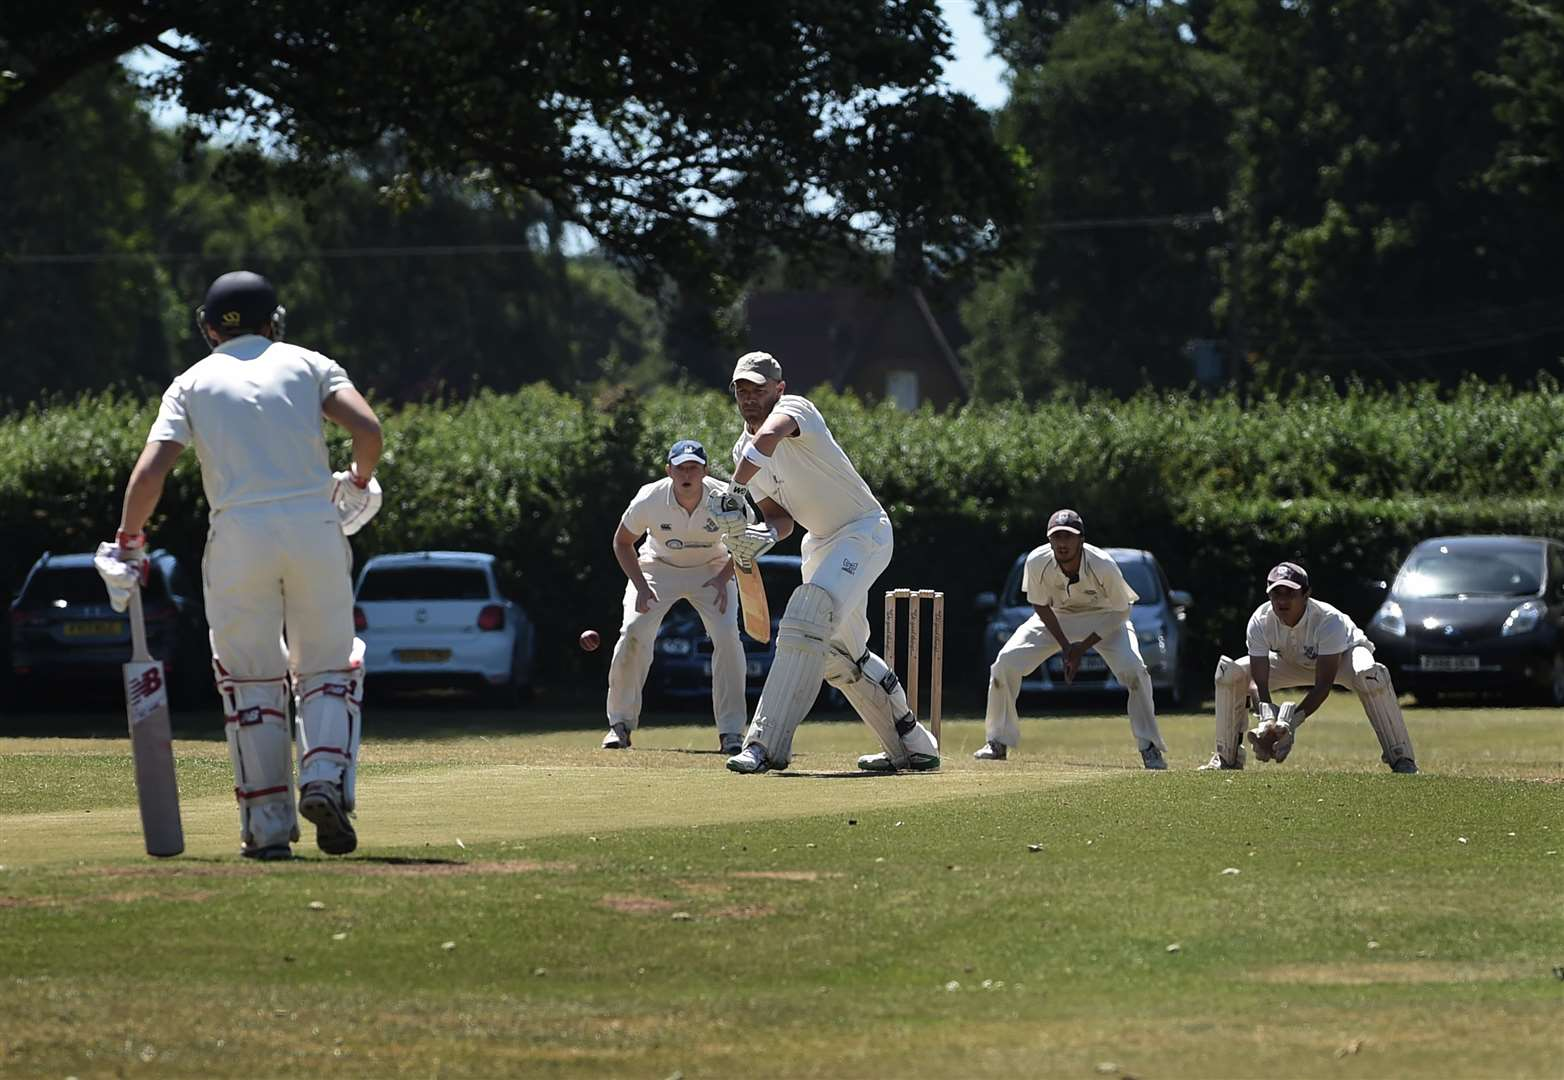 Chas Hubbard racking up 35 runs for Belvoir on Saturday. Photo: Toby Roberts (2860665)